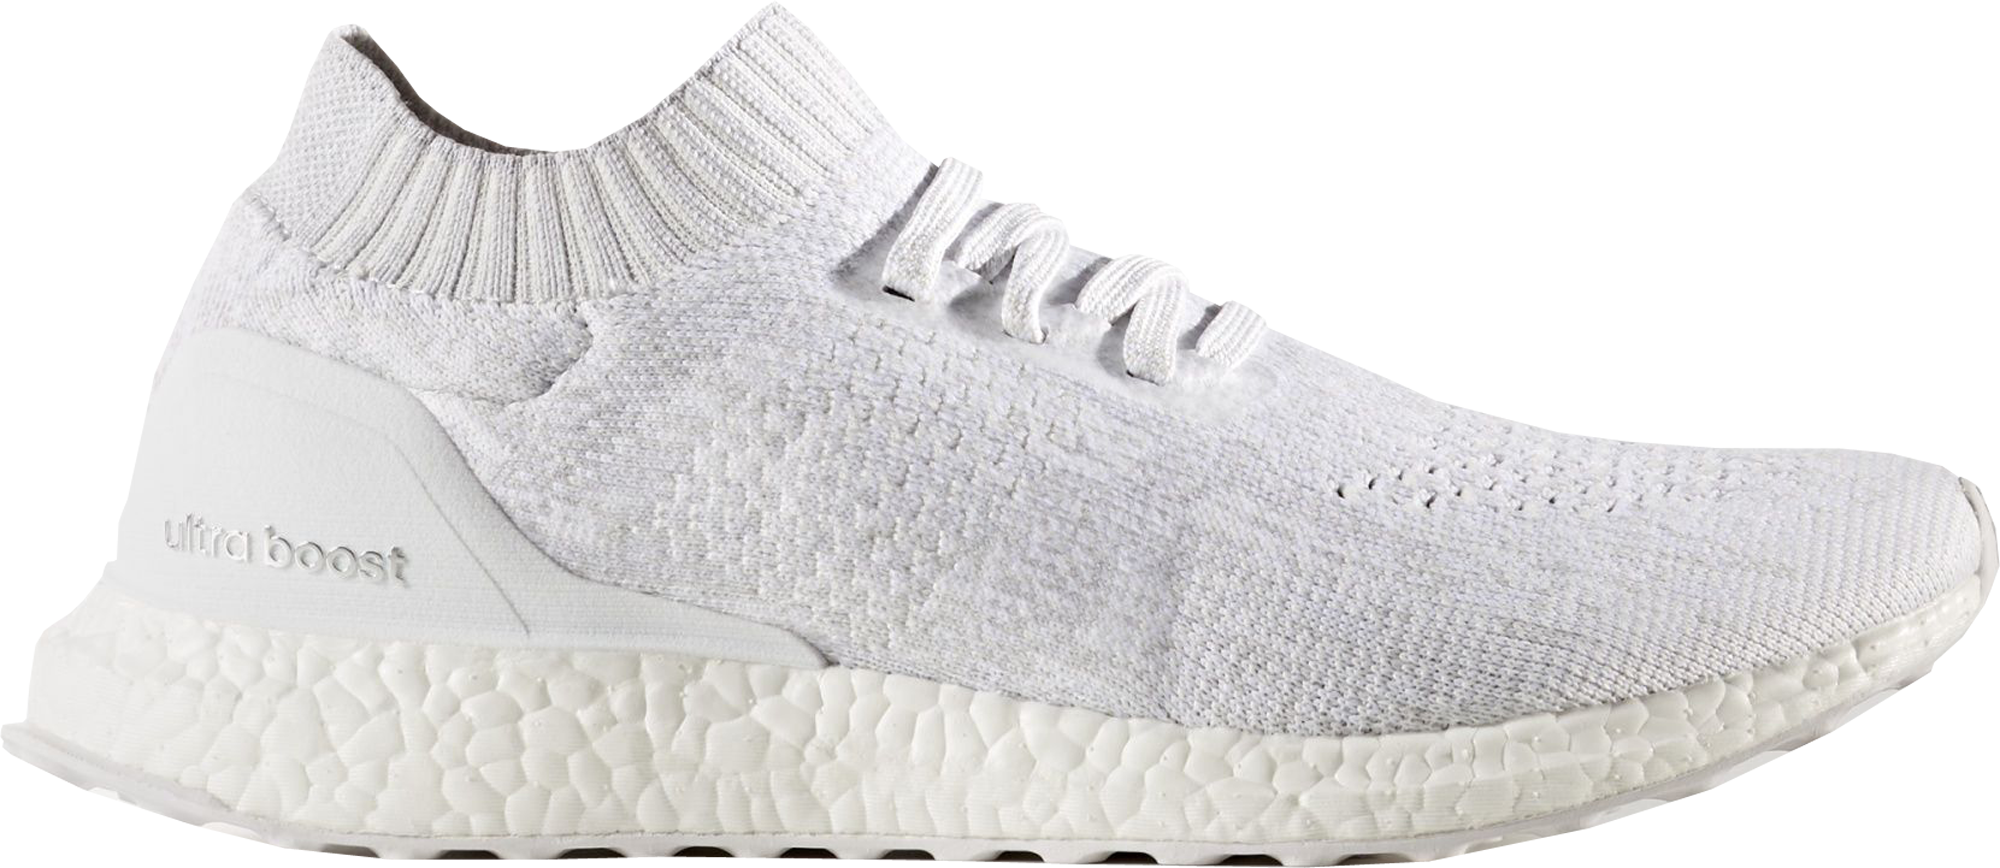 adidas Ultraboost Uncaged - BY2549 - Size 11.5 -